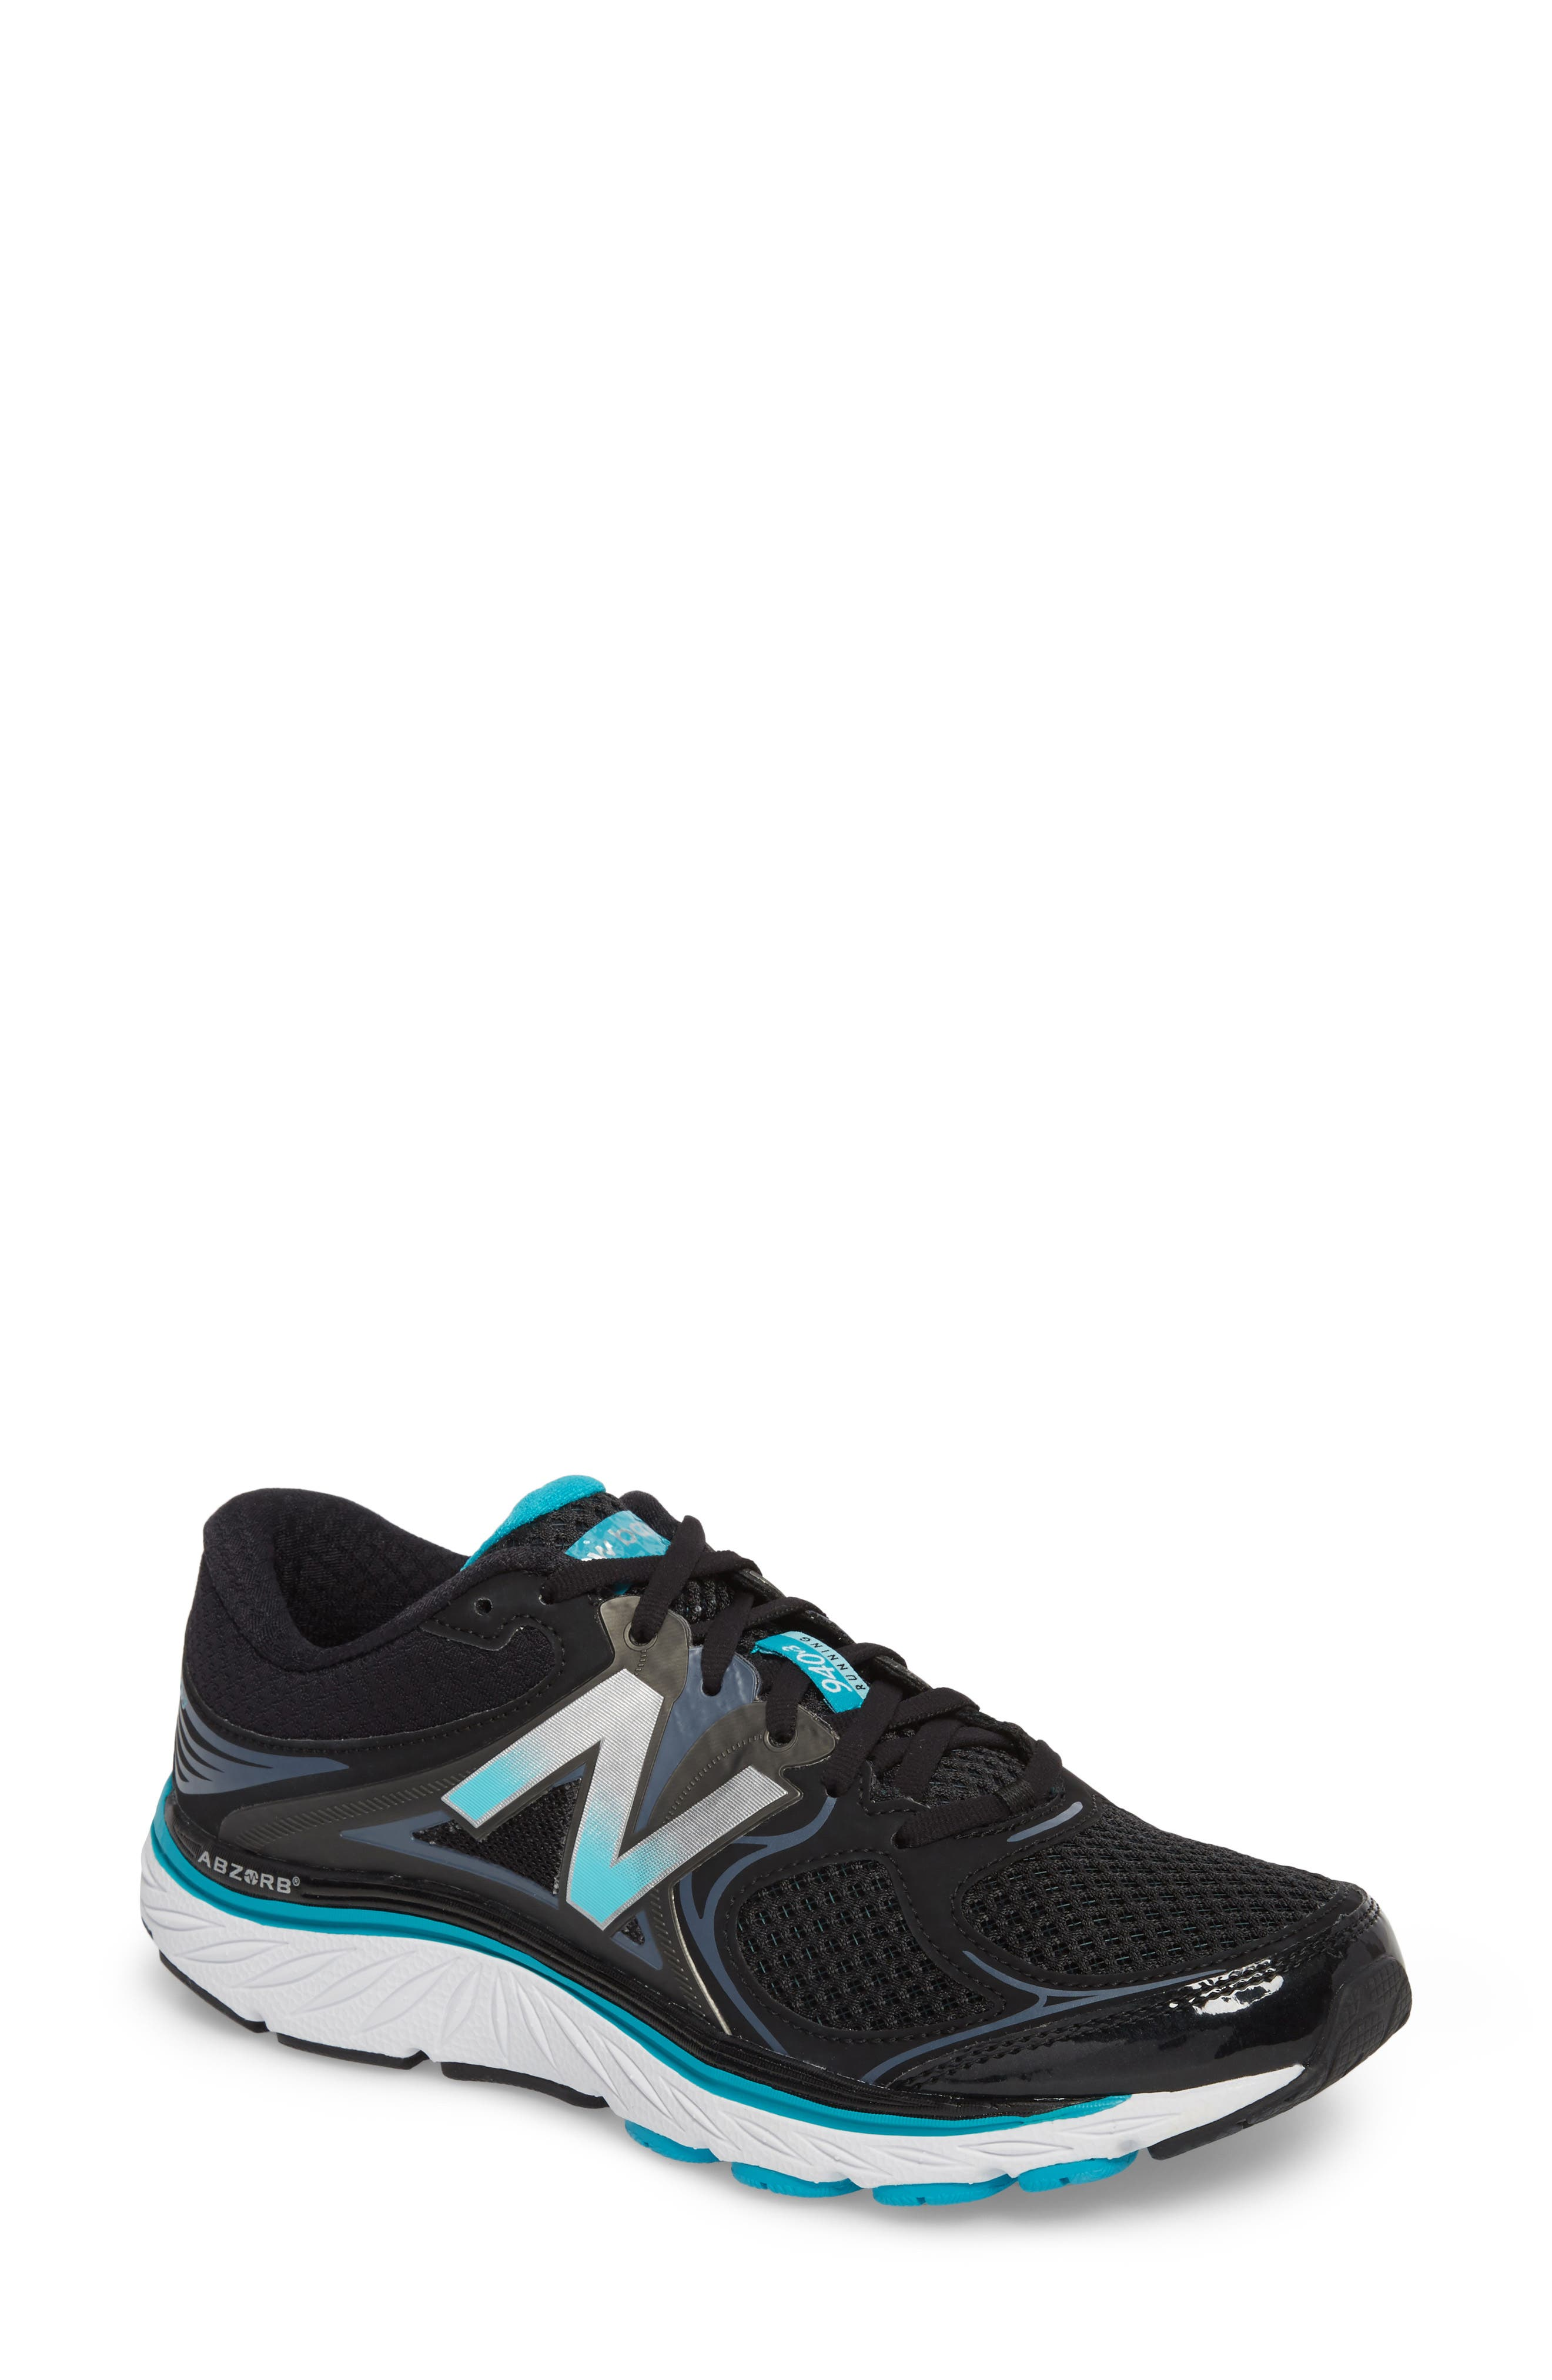 Alternate Image 1 Selected - New Balance 940v3 Running Shoe (Women)